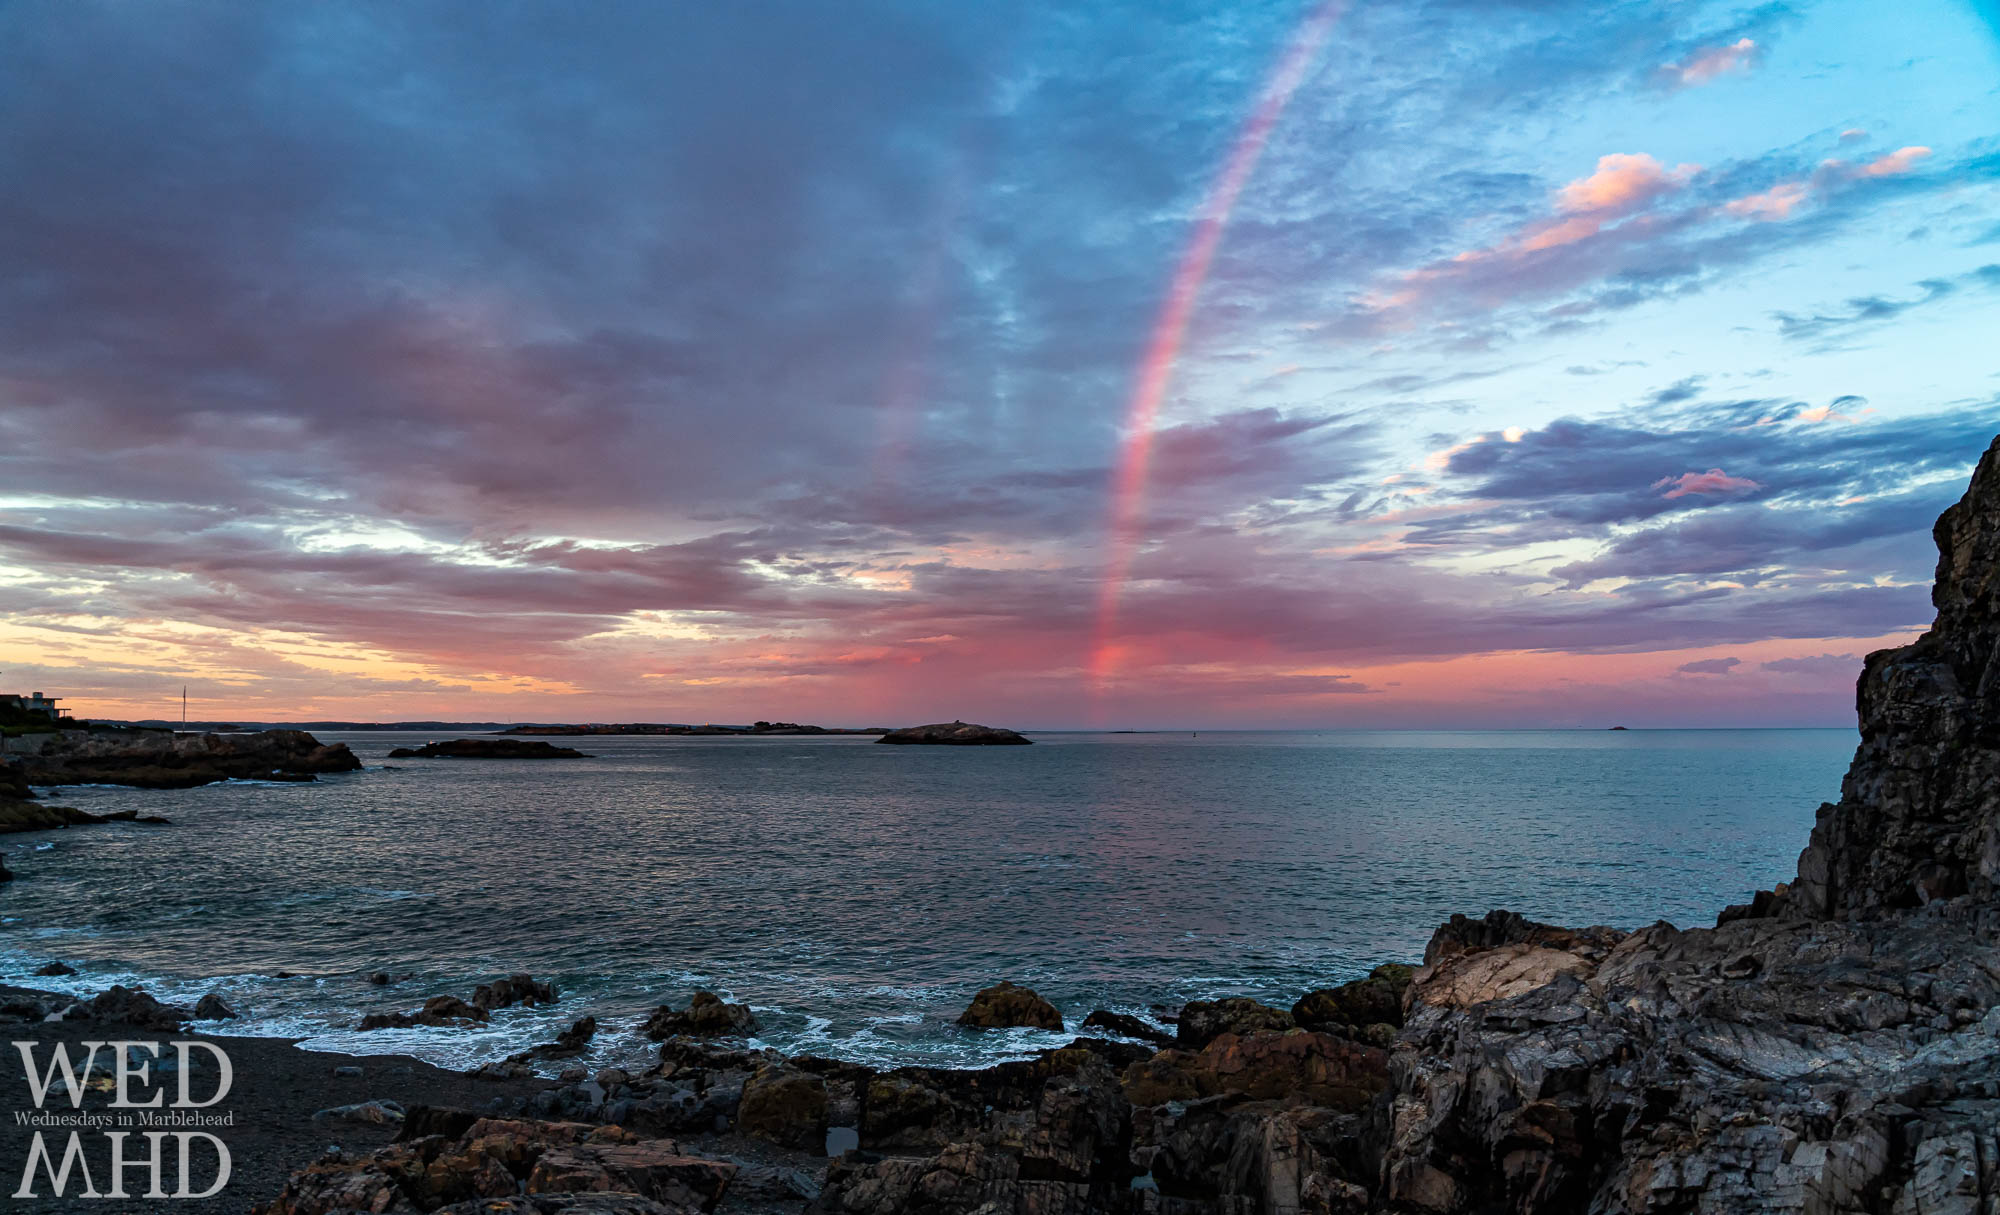 A rainbow forms in the pink sky of sunset over Castle Rock after a summer storm passes by Marblehead